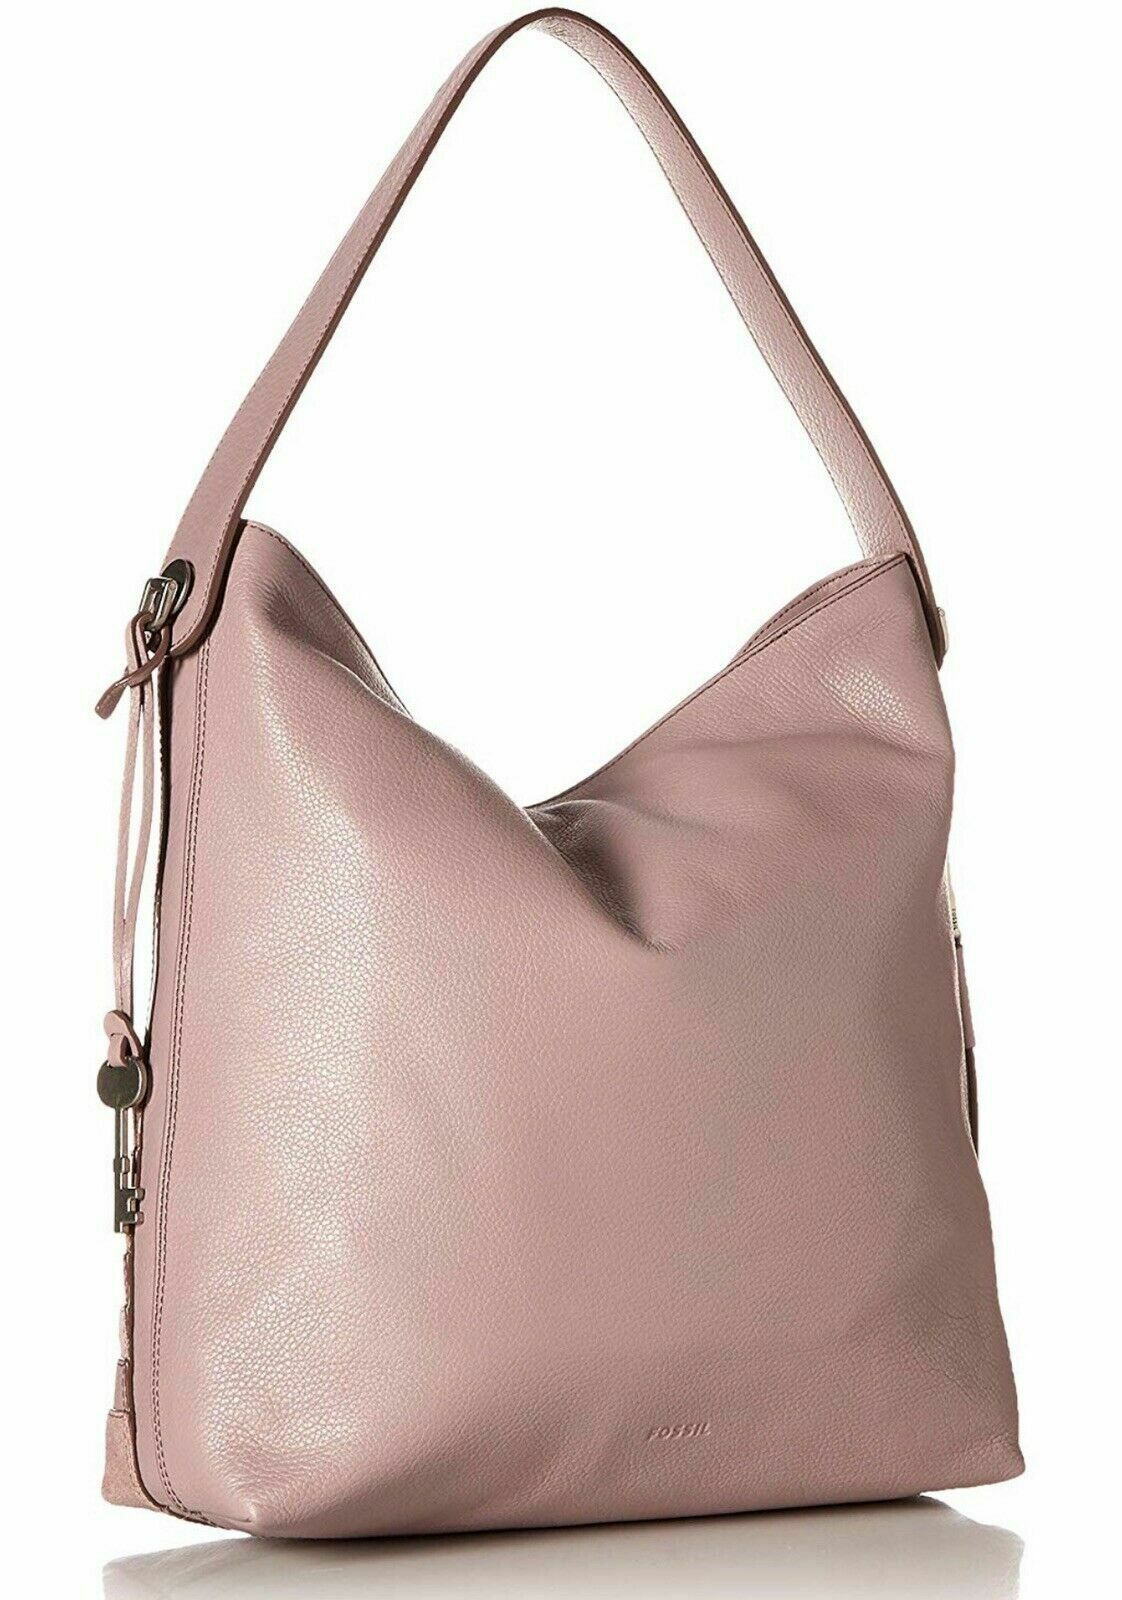 New Fossil Women's Maya Small Leather Hobo Bag Variety Colors image 5